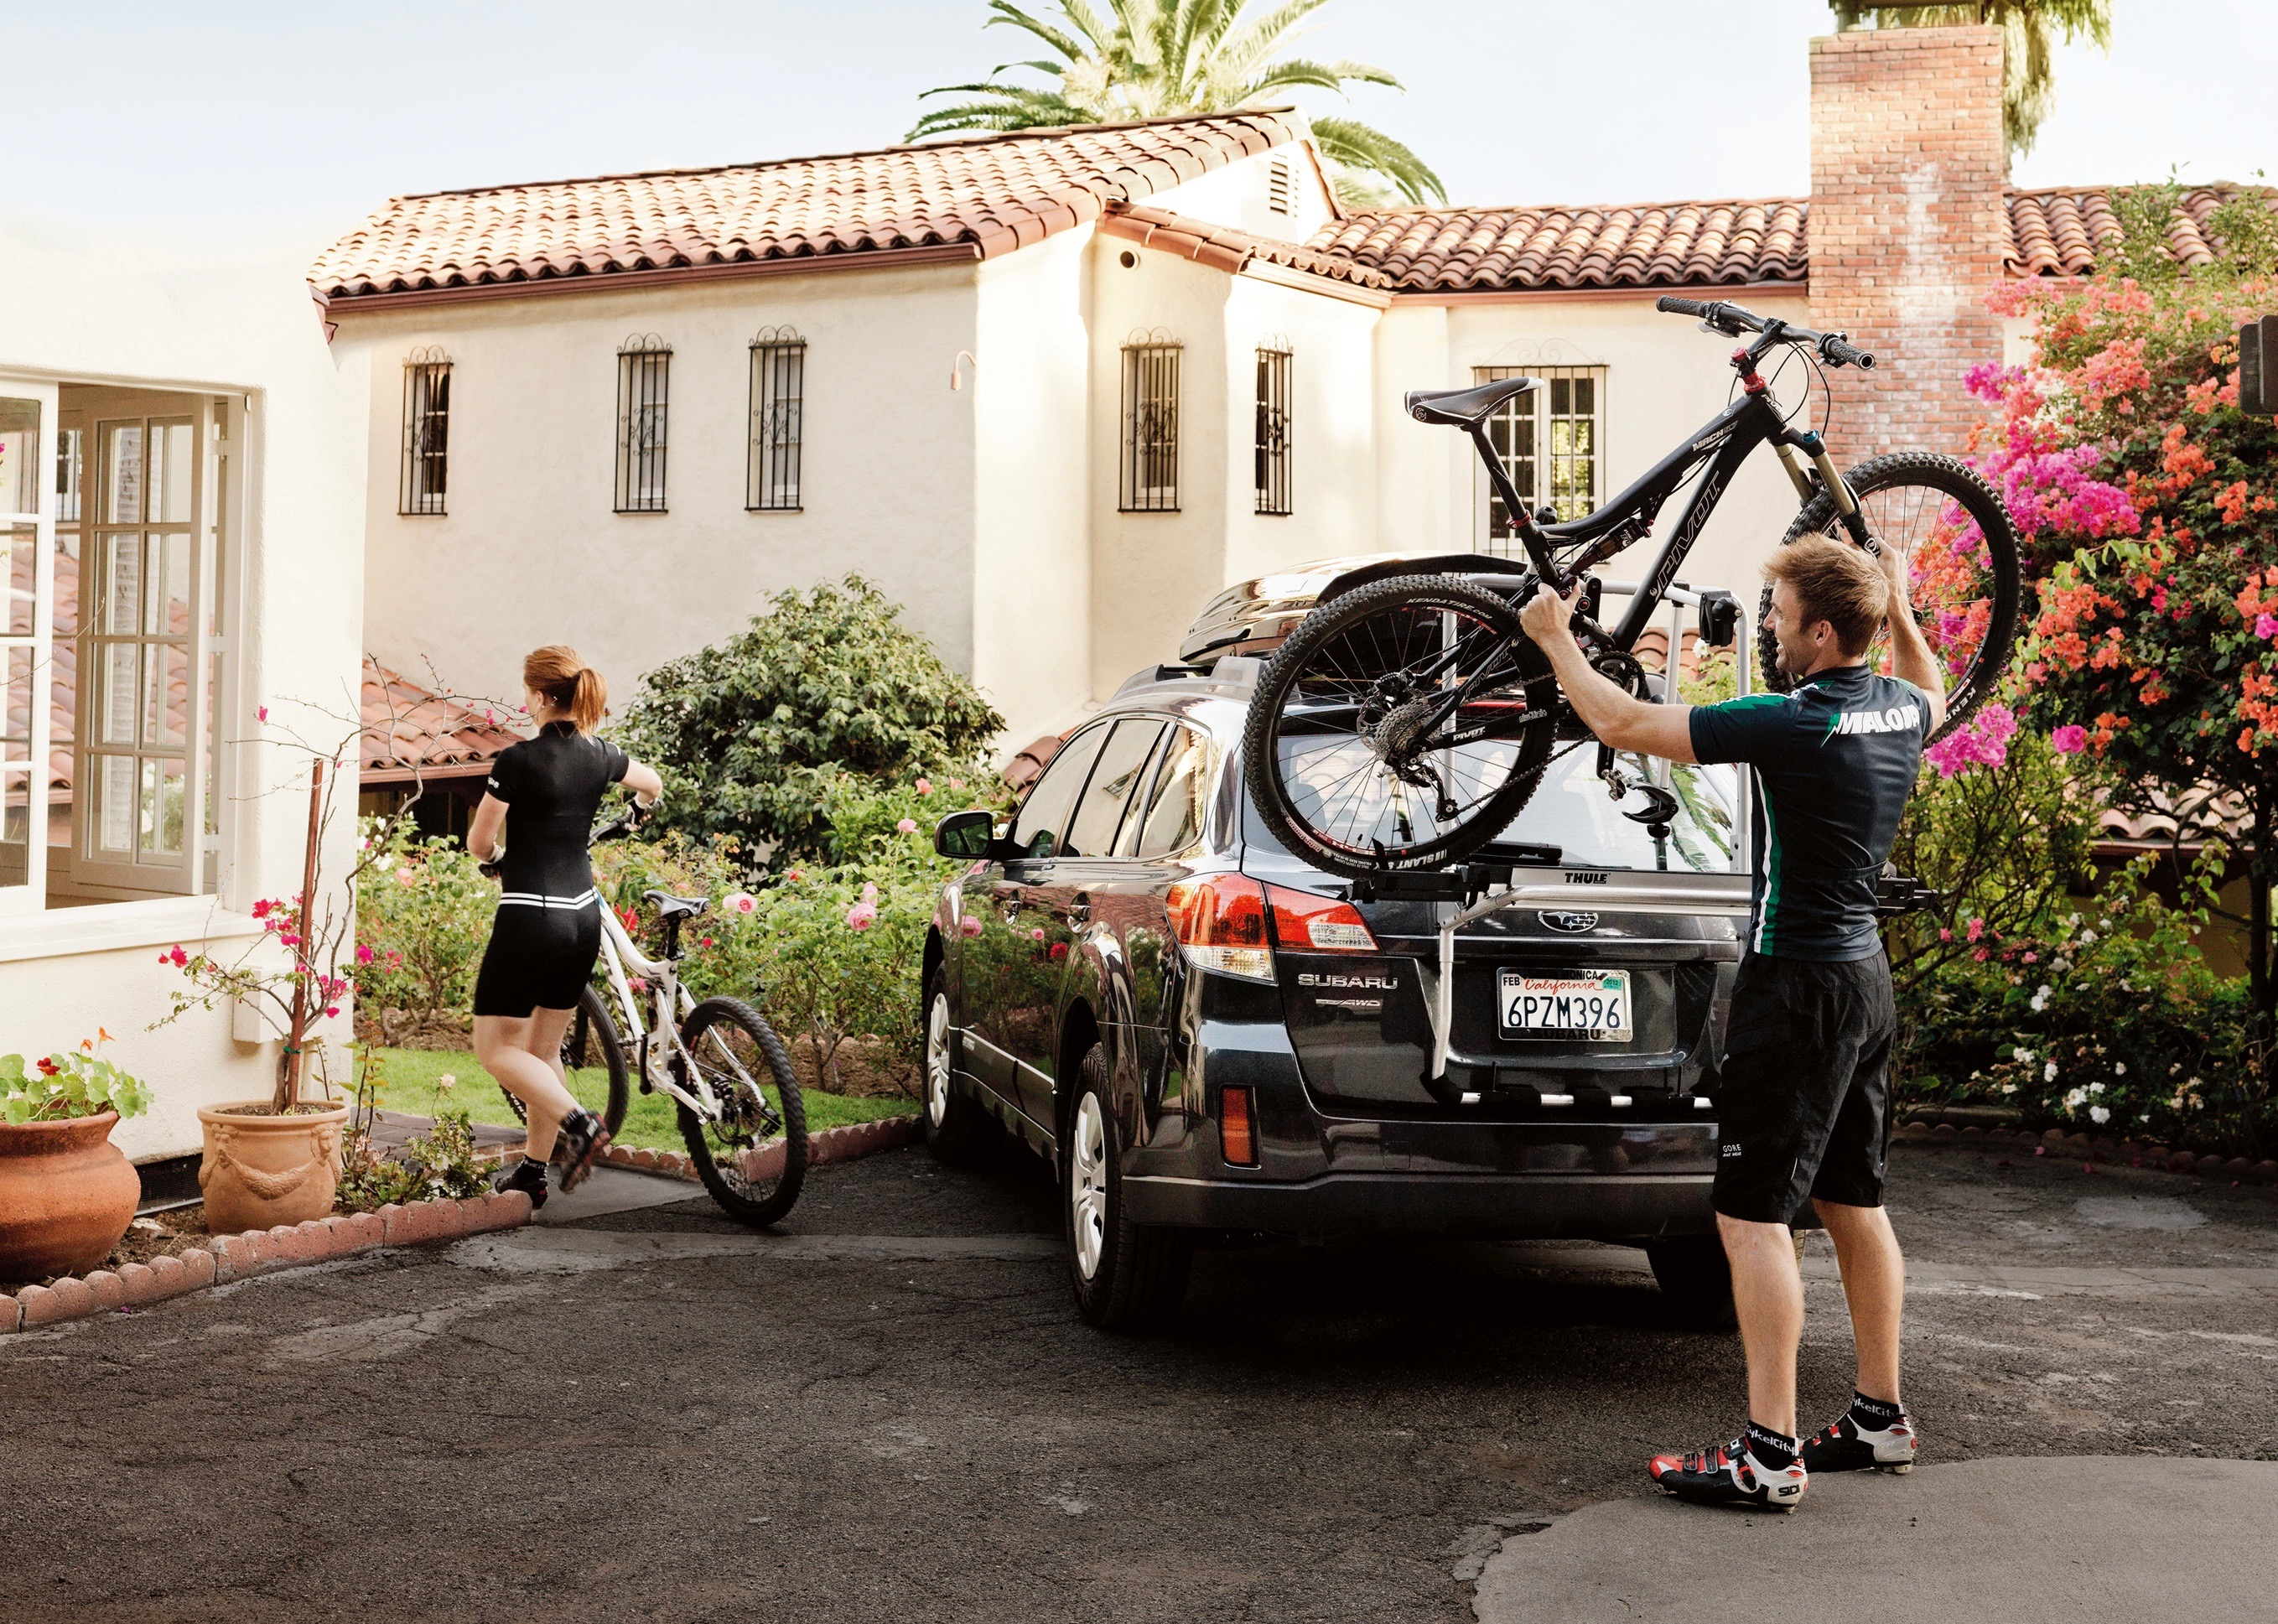 only tire with of pretty category full archived size mount vanguard on rack suv for car spare black bicycle carrier hitch bike